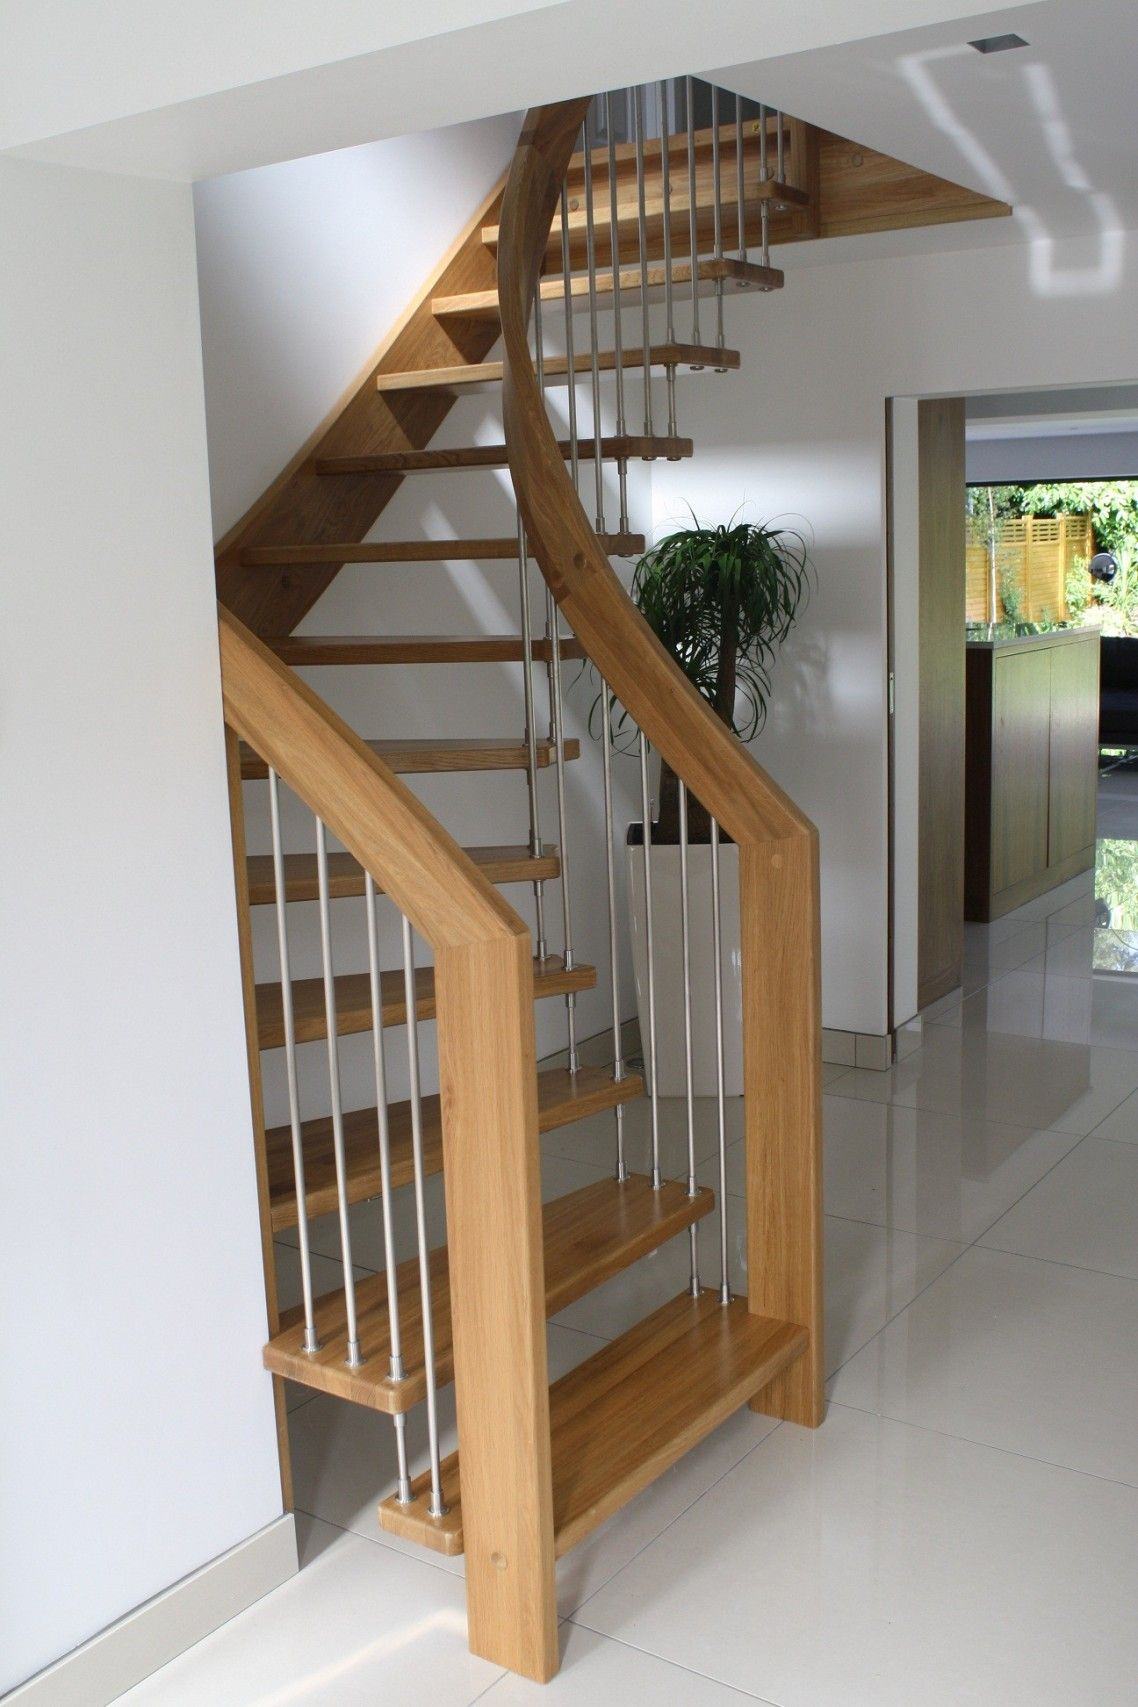 Stair Designs For Small Houses Alluring Design Ideas Of Small Space Staircase With Brown